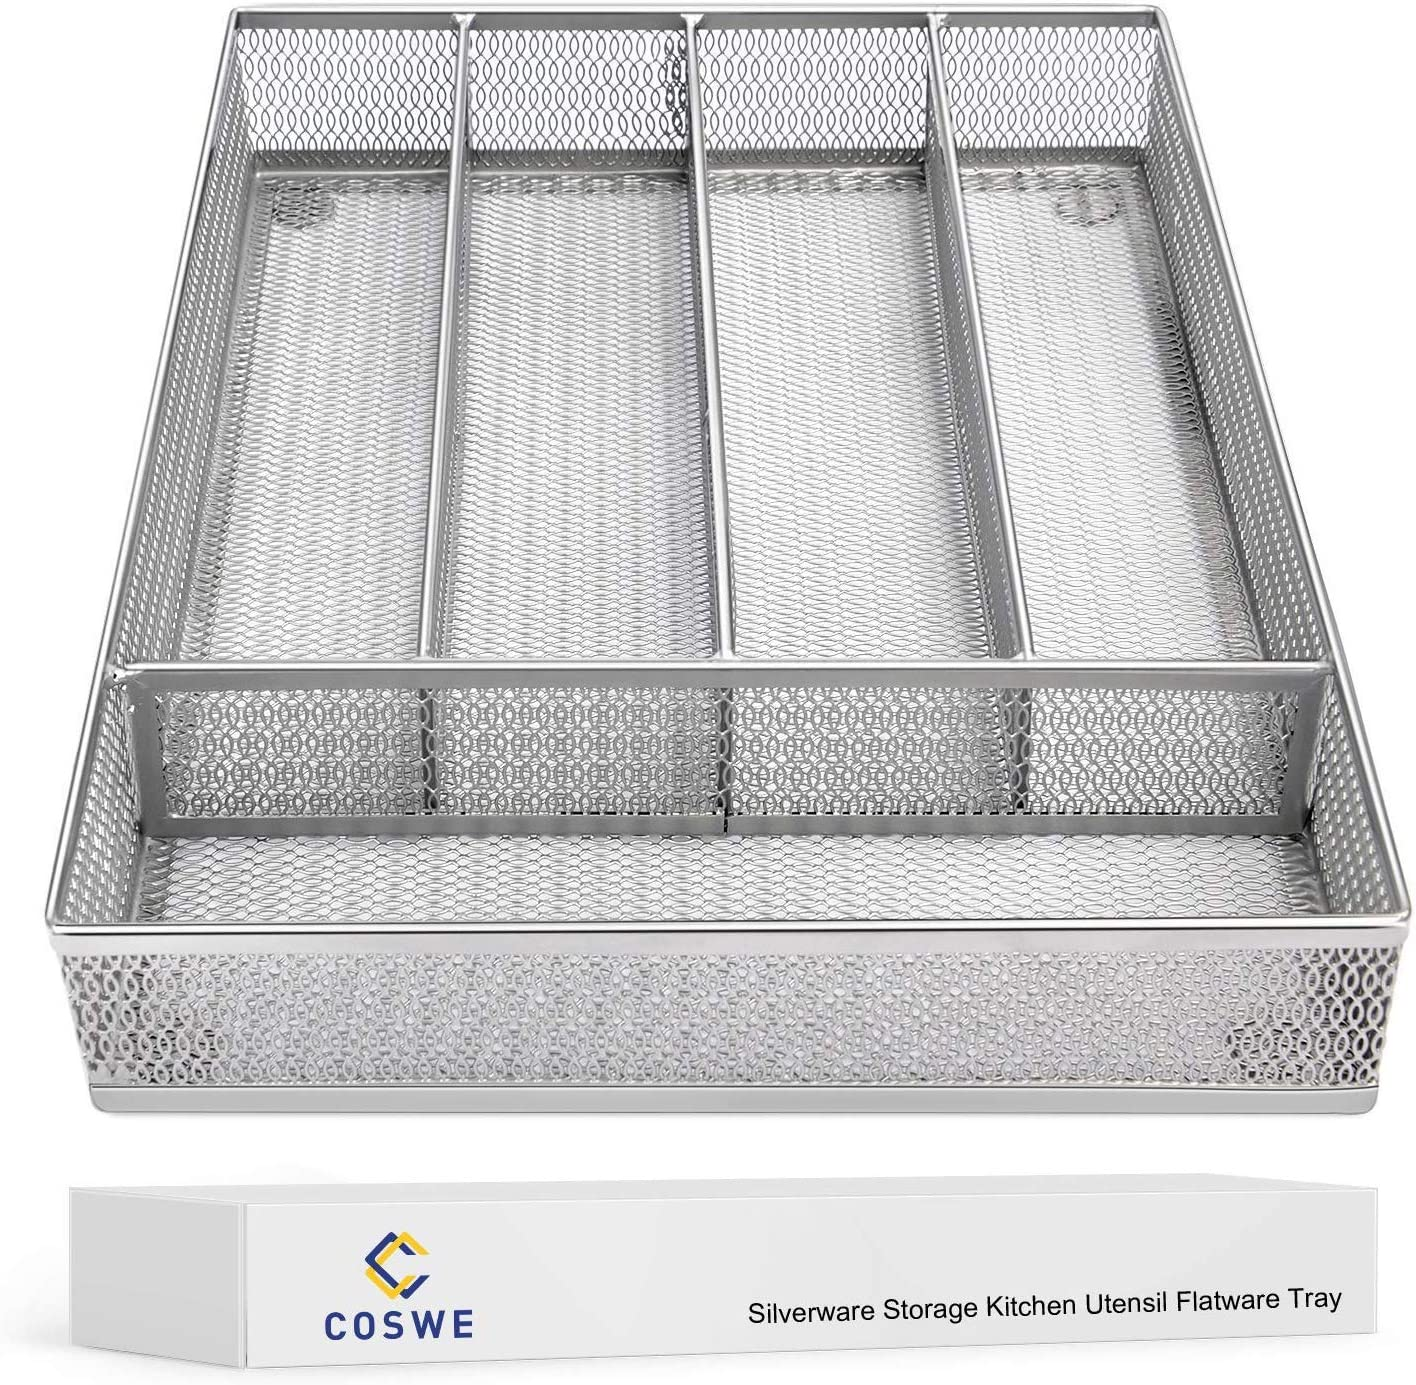 Flatware Tray Utensil Drawer Organizer Kitchen Utensil Cutlery Tray Mesh Designing with Foam Feet Multi Compartments Keep Desk Drawer and Office Supplies Well Organized (Silver): Kitchen & Dining